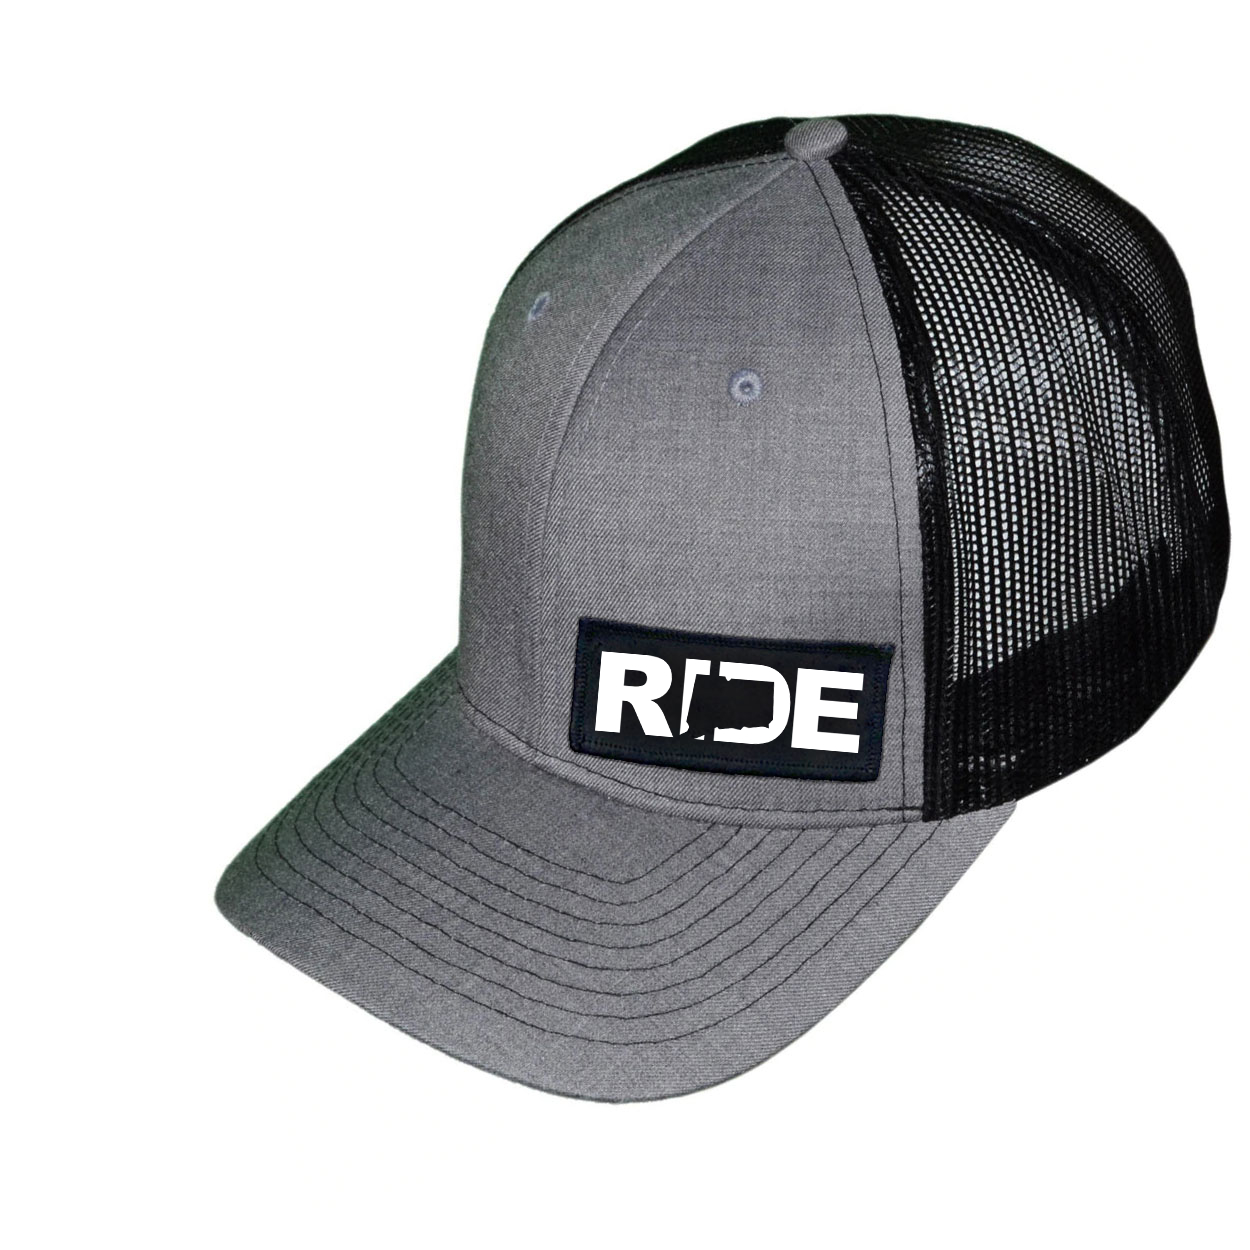 Ride Connecticut Night Out Woven Patch Snapback Trucker Hat Heather Gray/Black (White Logo)